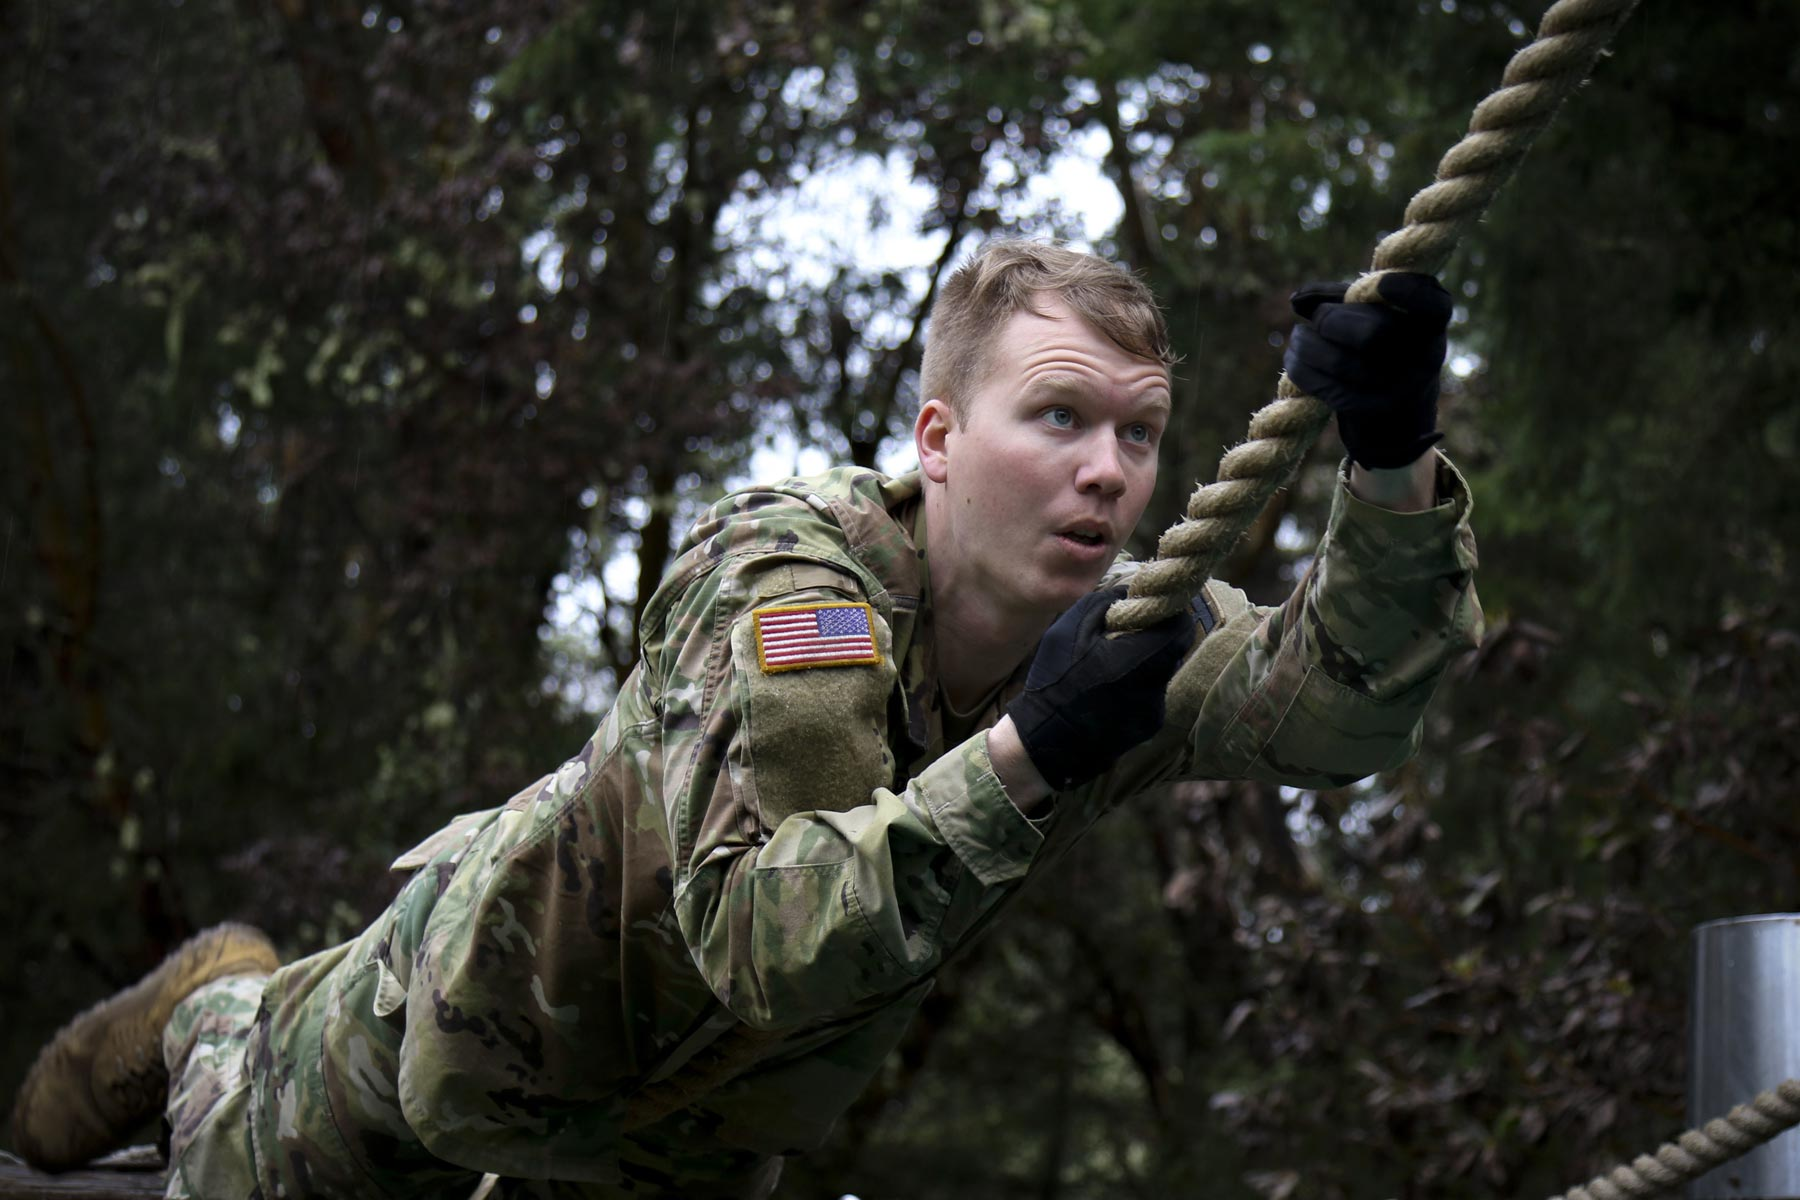 Army Wants New Recruiting Slogan as Powerful as 'Be All You